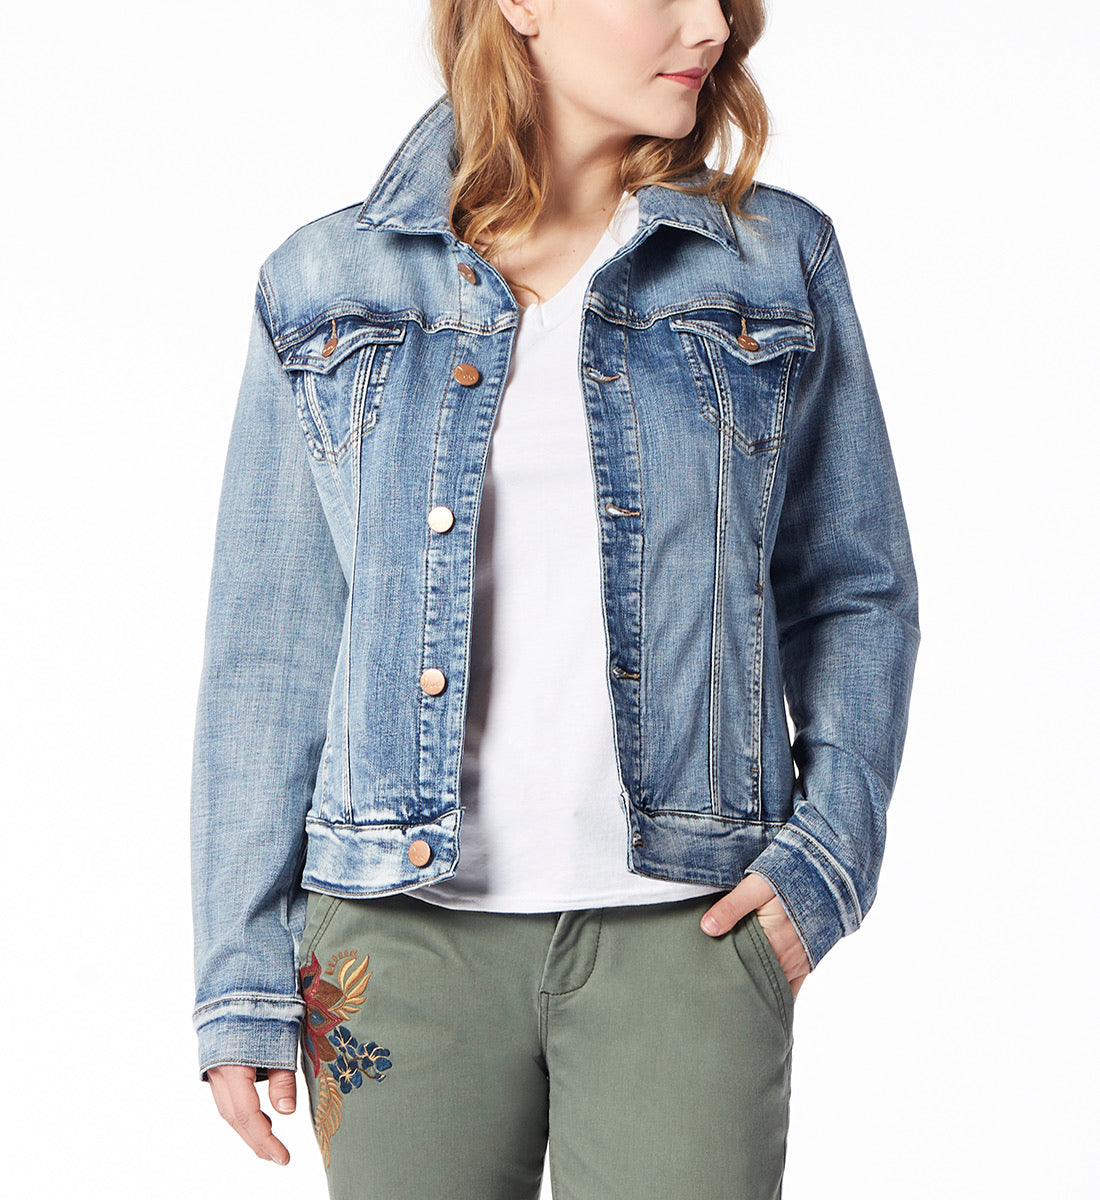 JAG Light Wash Jean Jacket